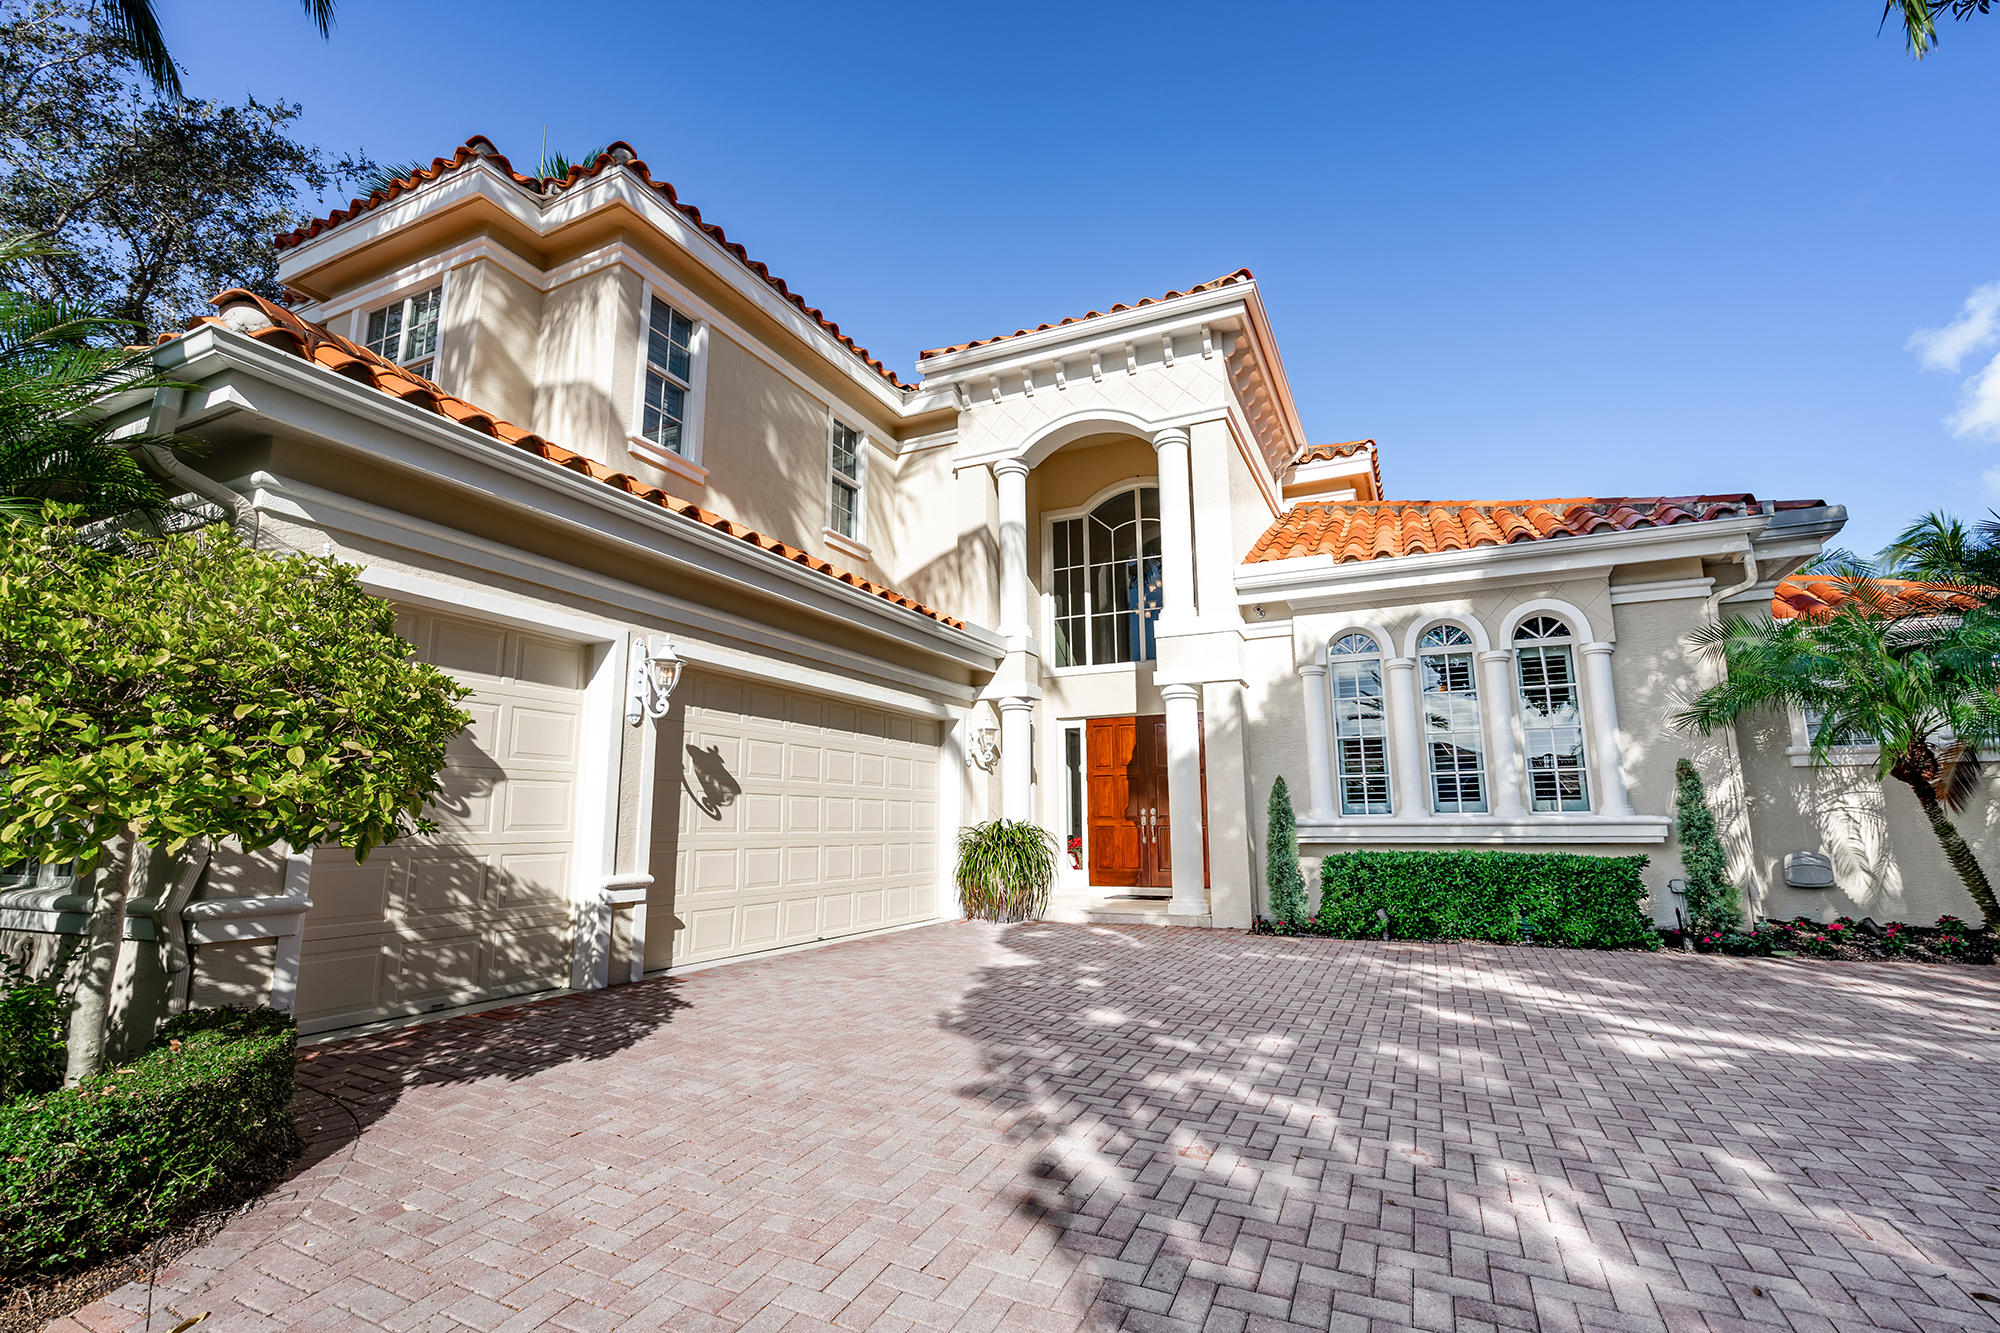 New Home for sale at 3379 Bridgegate Drive in Jupiter